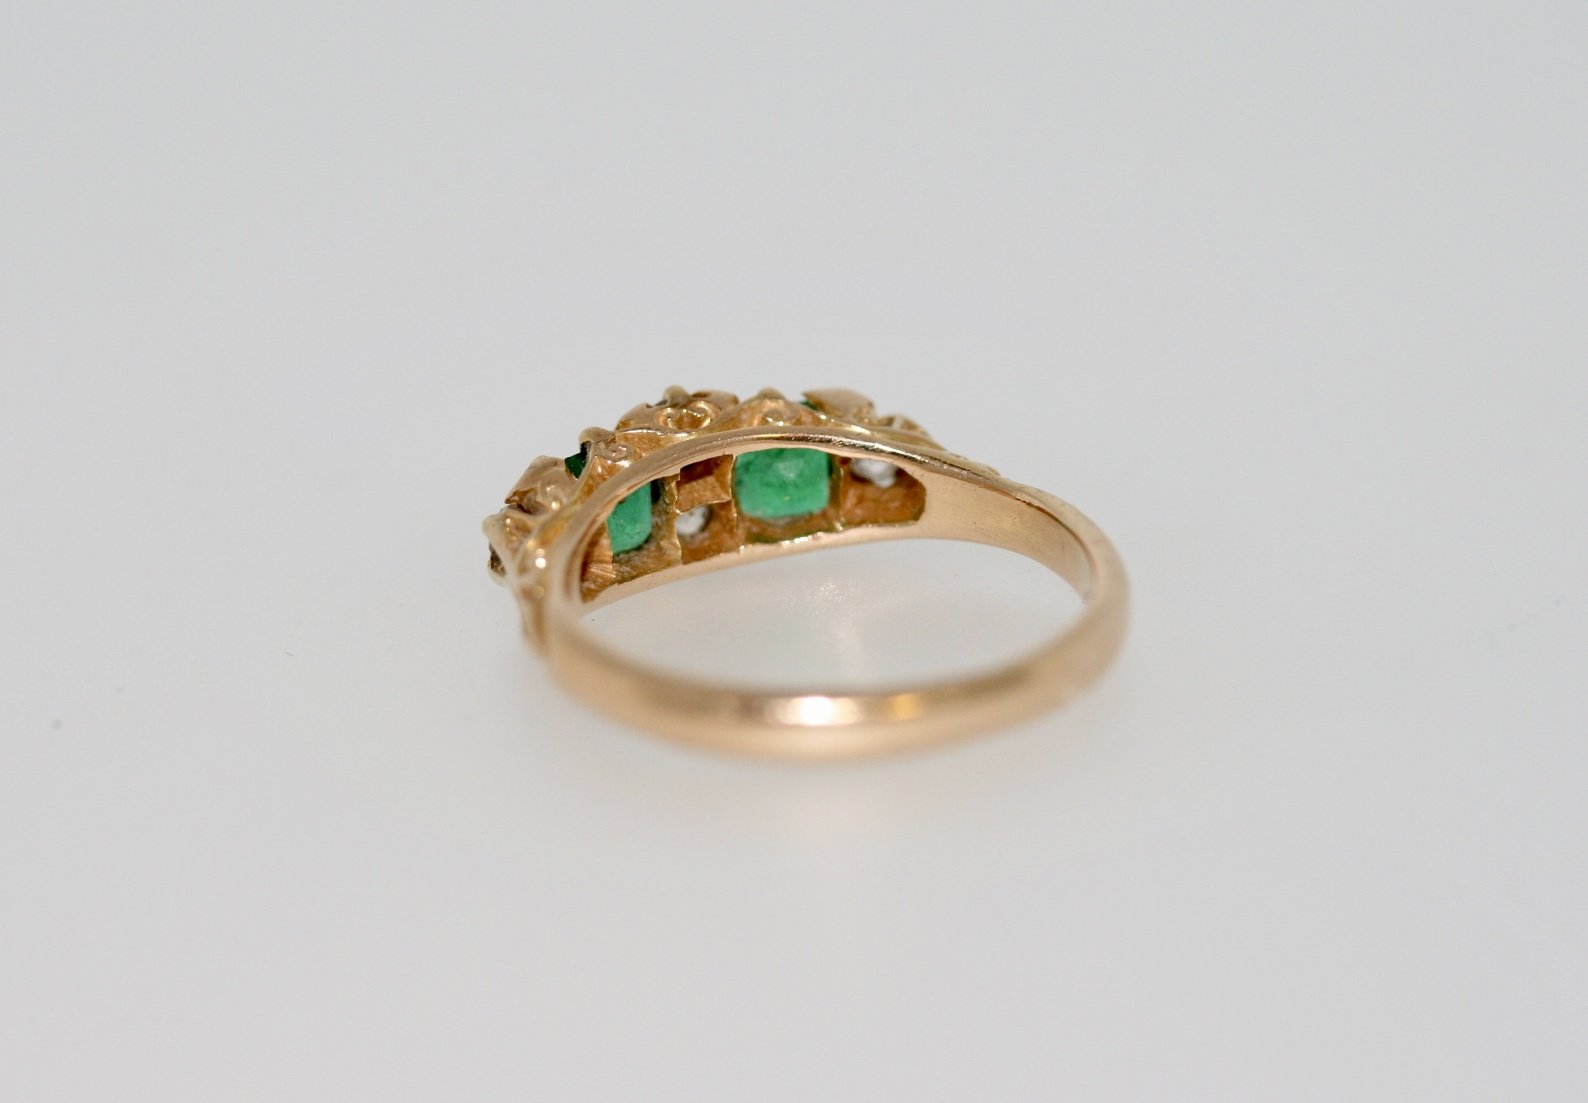 Edwardian Emerald And Diamond Ring, Circa 1904